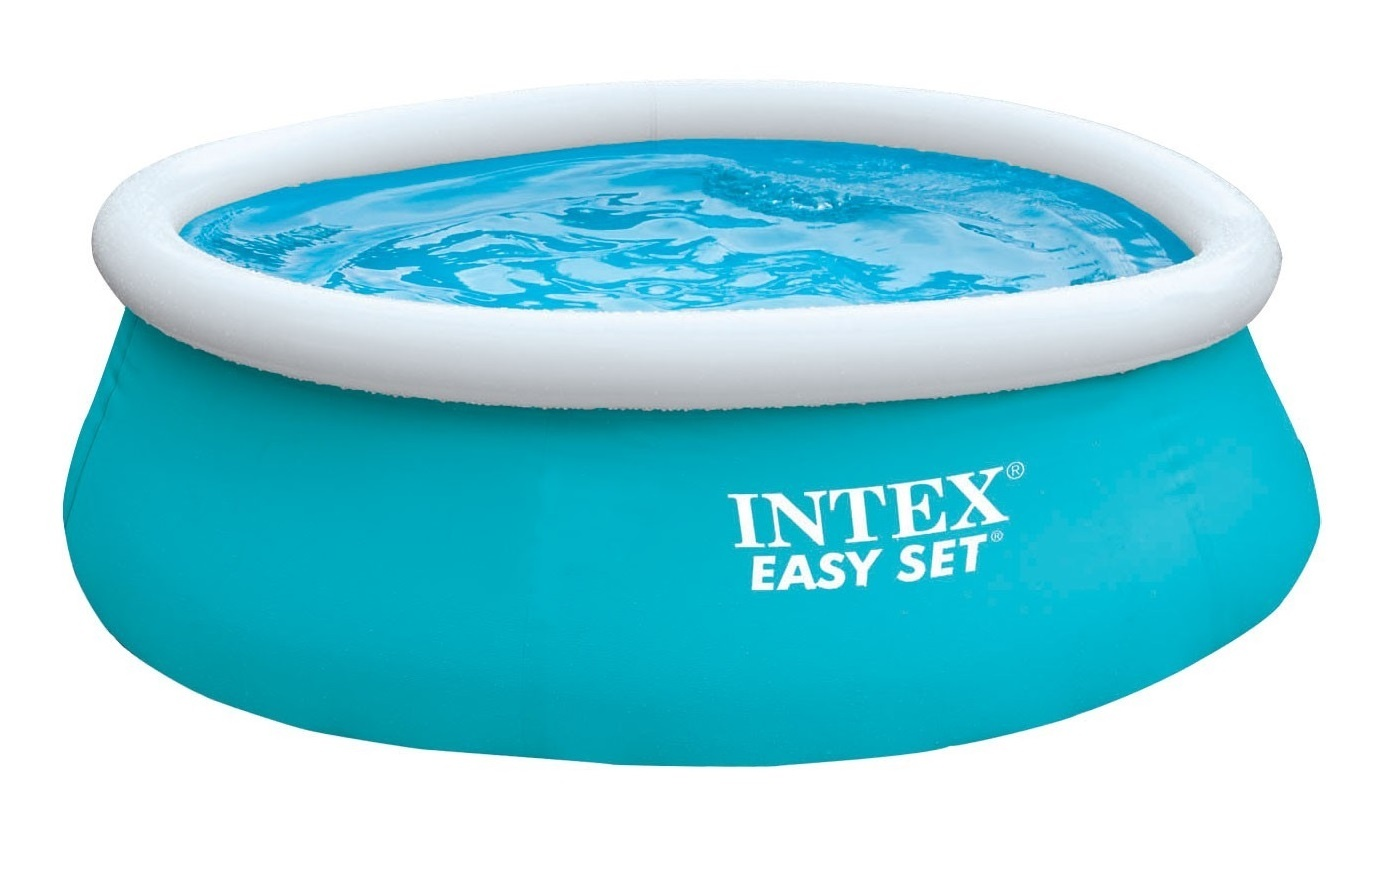 Filterpumpe Pool Entleeren Intex Aufblasbarer Pool Easy Set Pool 183 X 51 Cm Blau Internet Toys